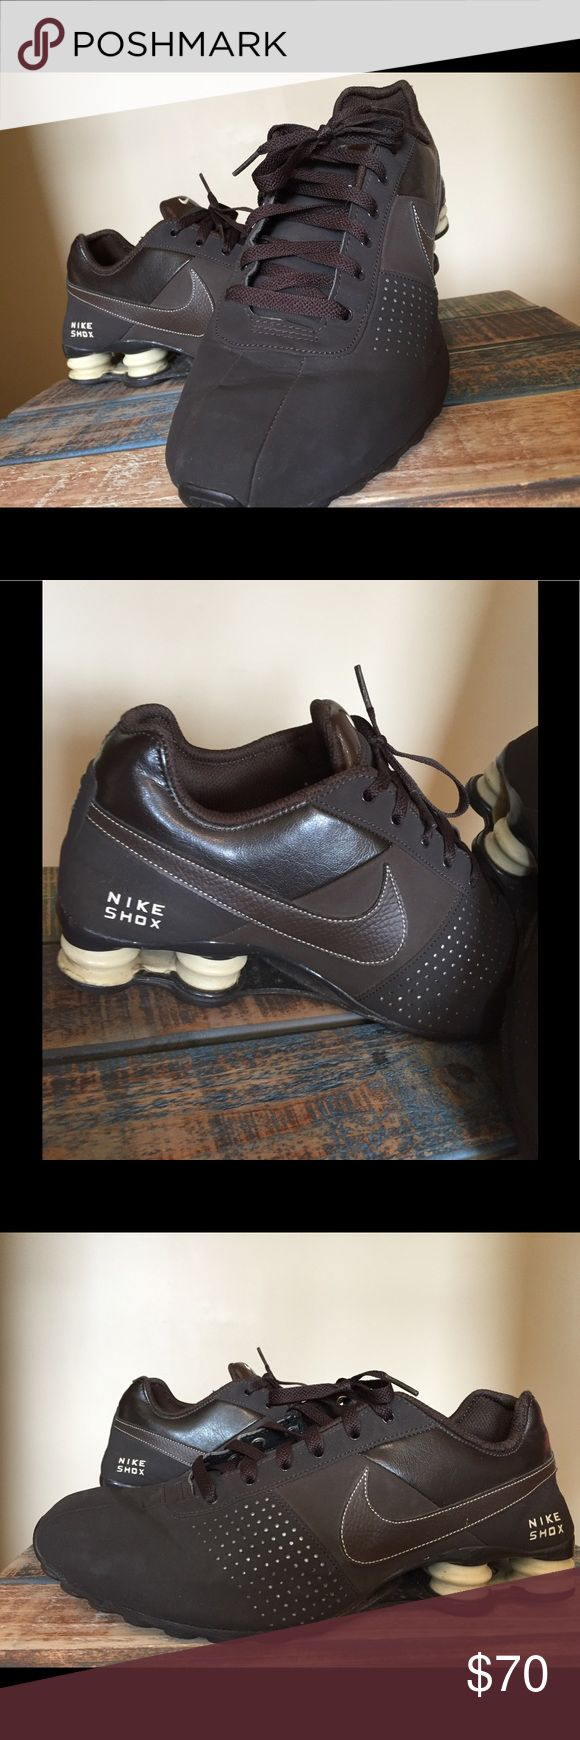 "MEN'S NIKE SHOX Running Shoes This is a pair of men's Nike Shox ""Deliver"" running shoes.. they are in excellent used condition.  Worn only twice!! Nike Shoes Sneakers"